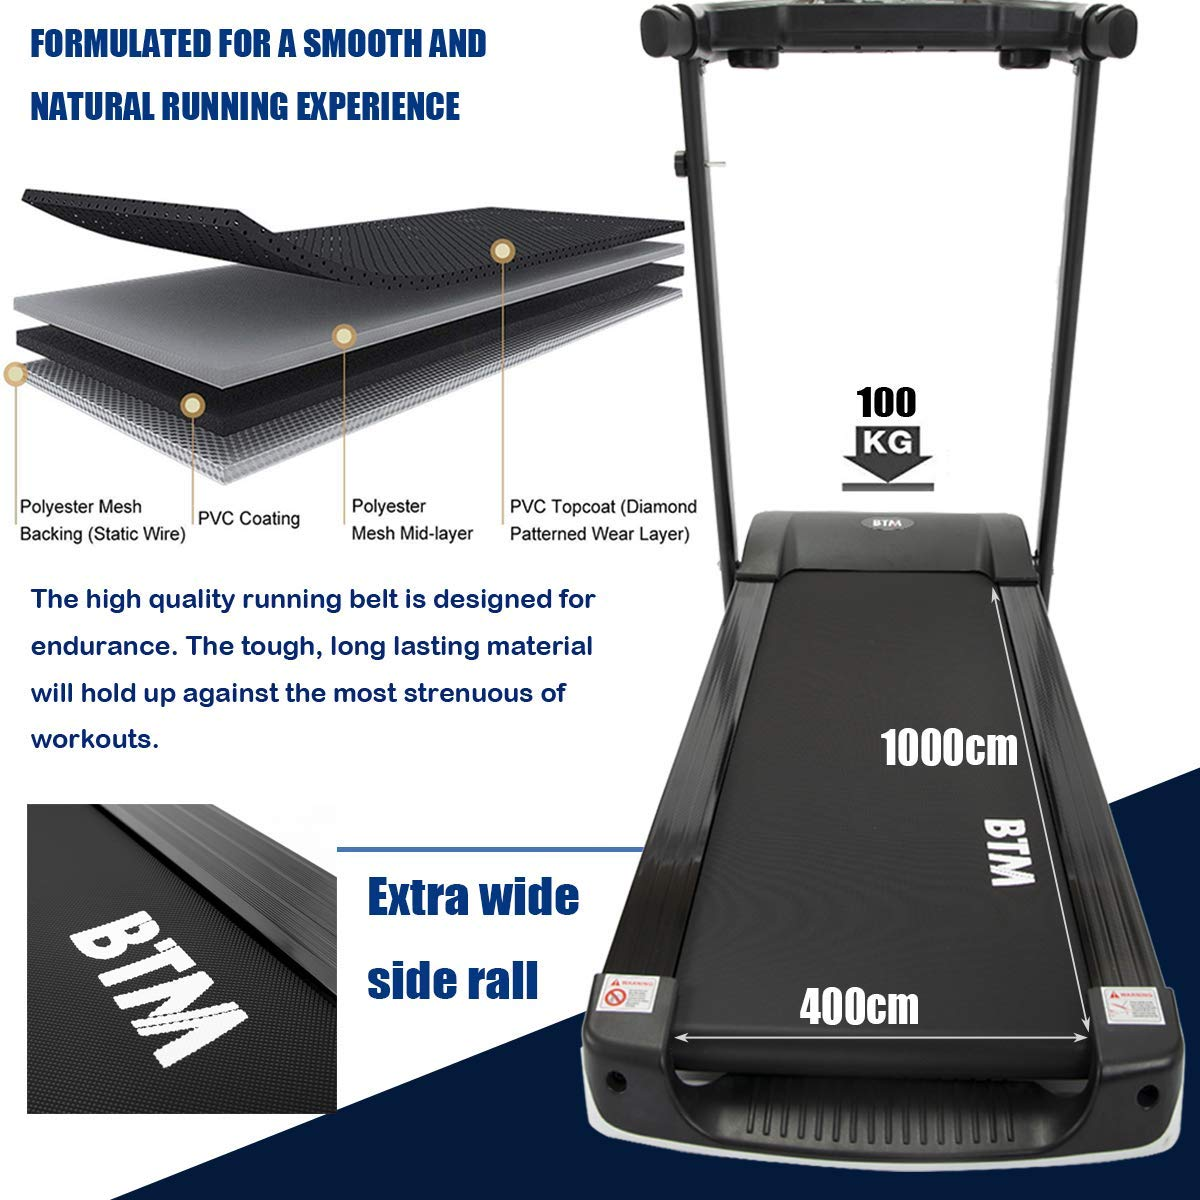 BTM A7 Motorised electric treadmill Folding Running machine 2019 Digital Control 2.0CHP Motor Up to 12.8KM//H 15 Programmes Walking Machine Portable Gym Equipment for Fitness Workout